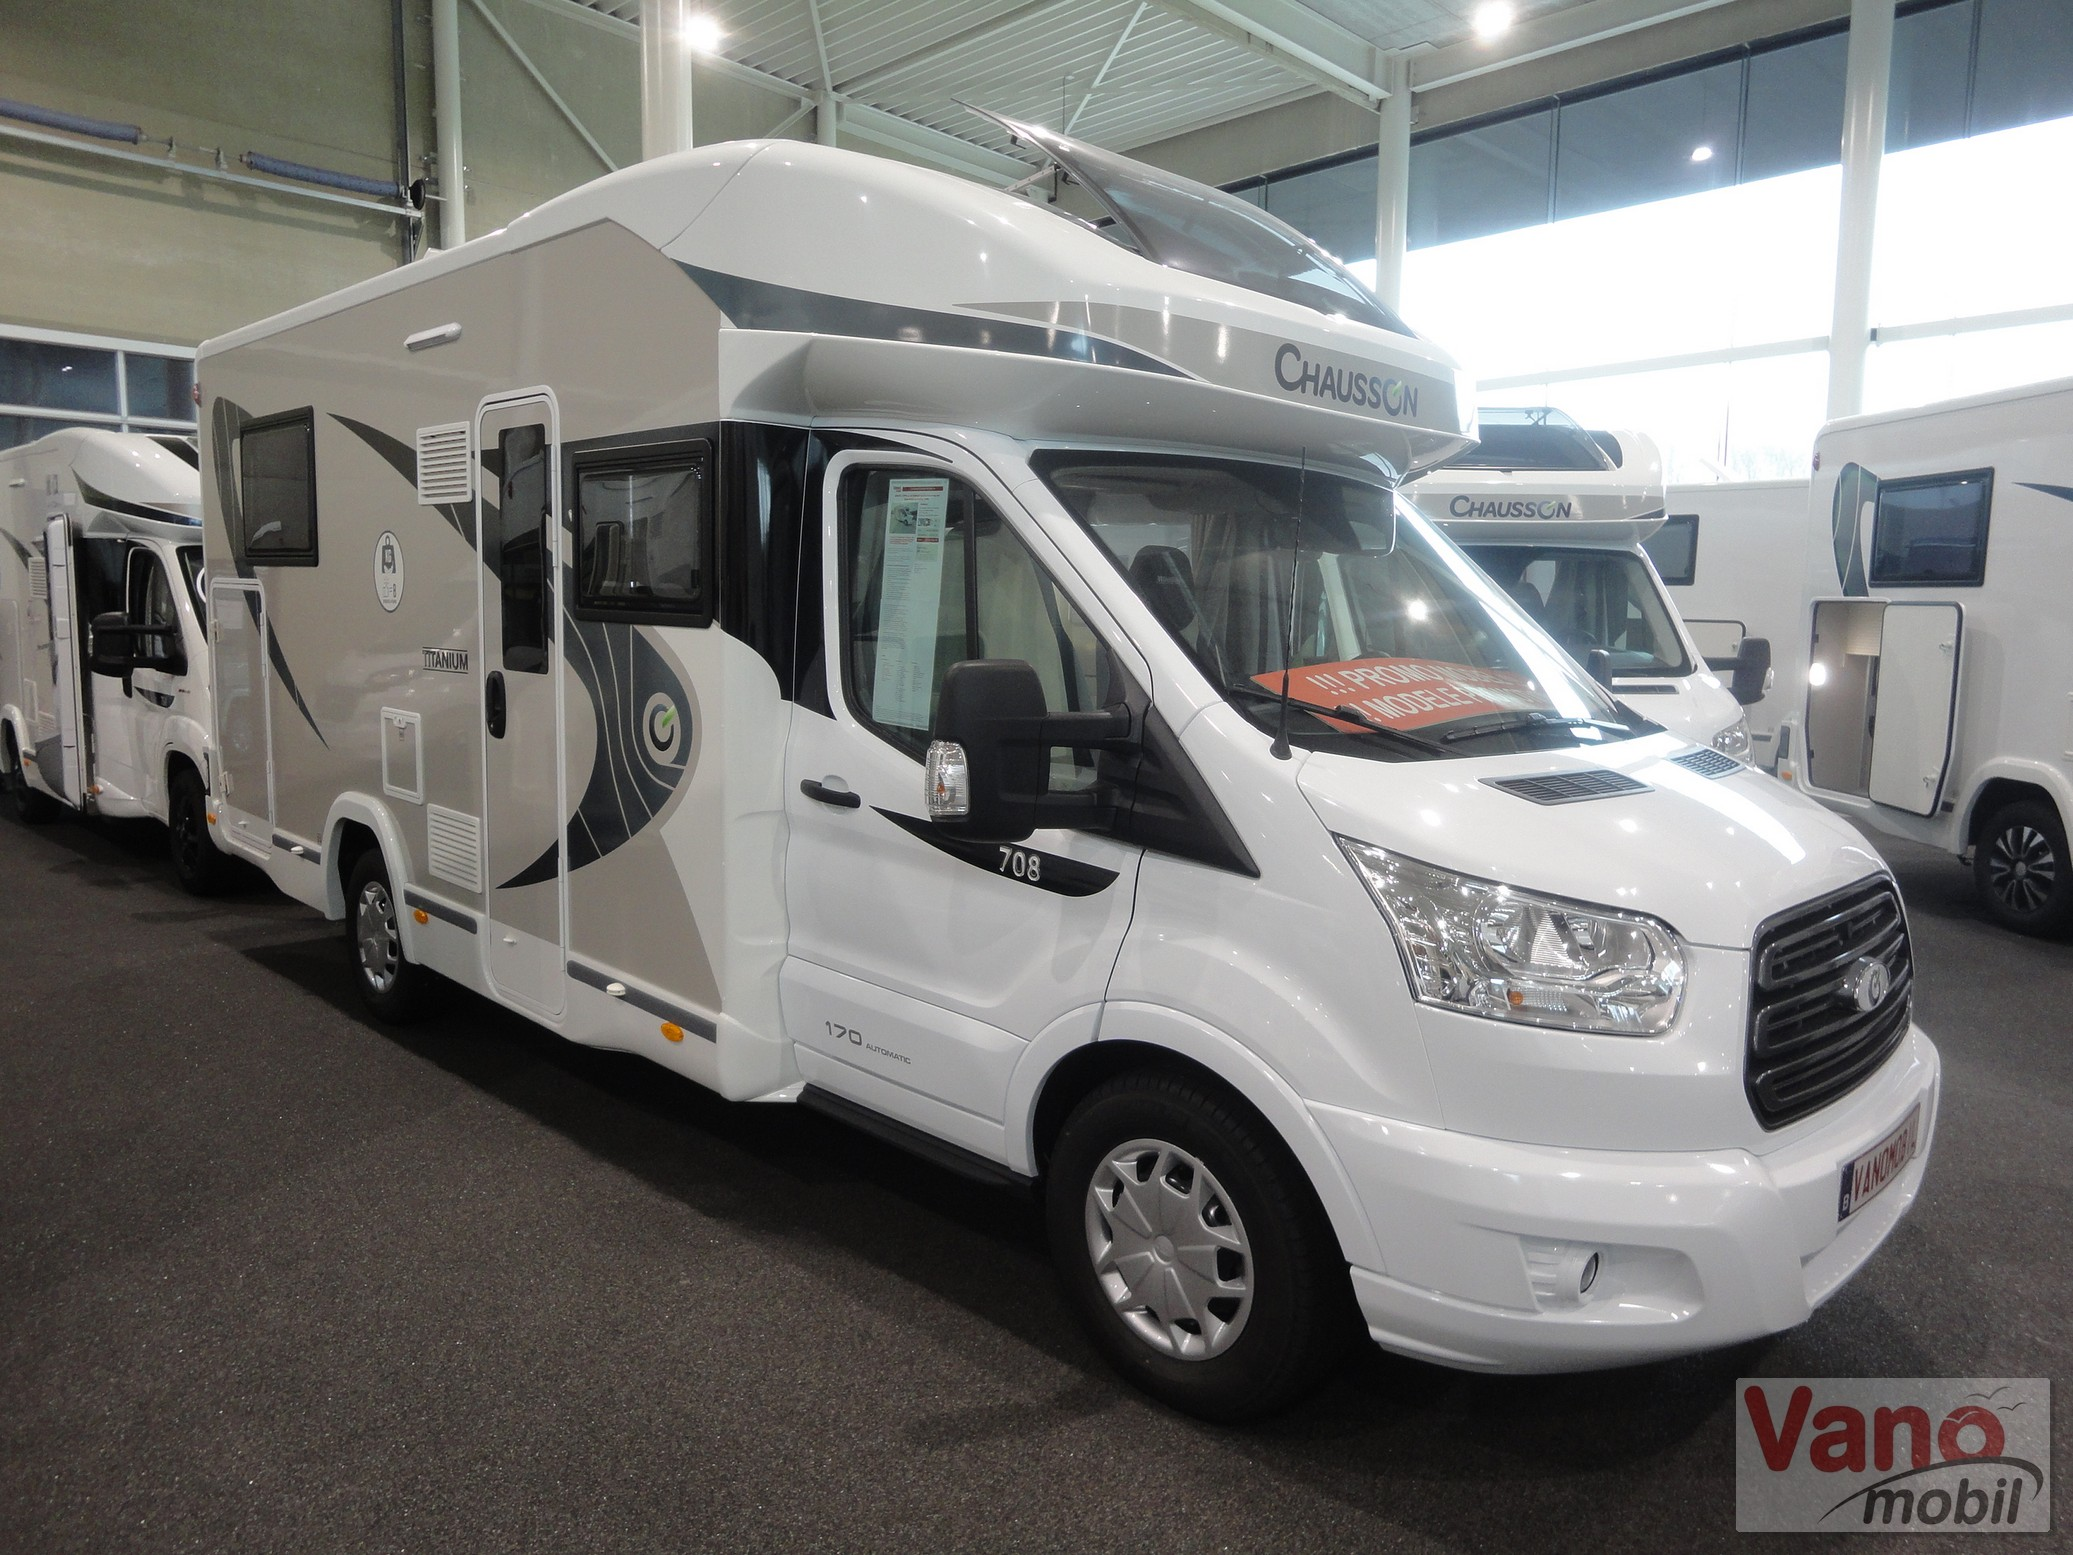 Chausson - Titanium 708 Ford 170 Automatic - 1